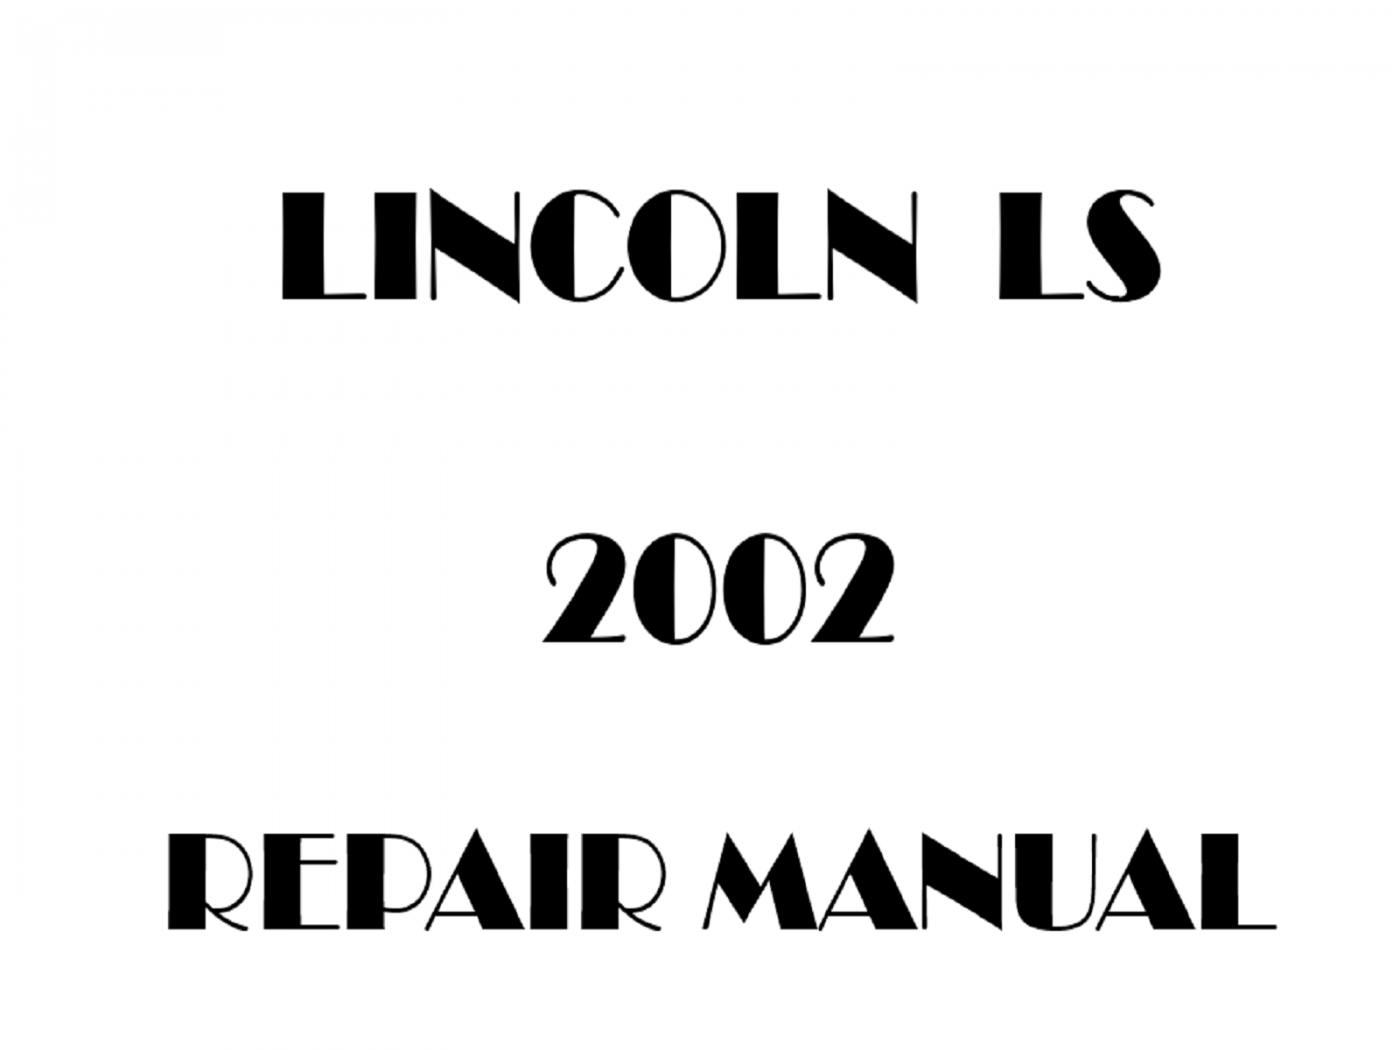 2002 Lincoln LS repair manual